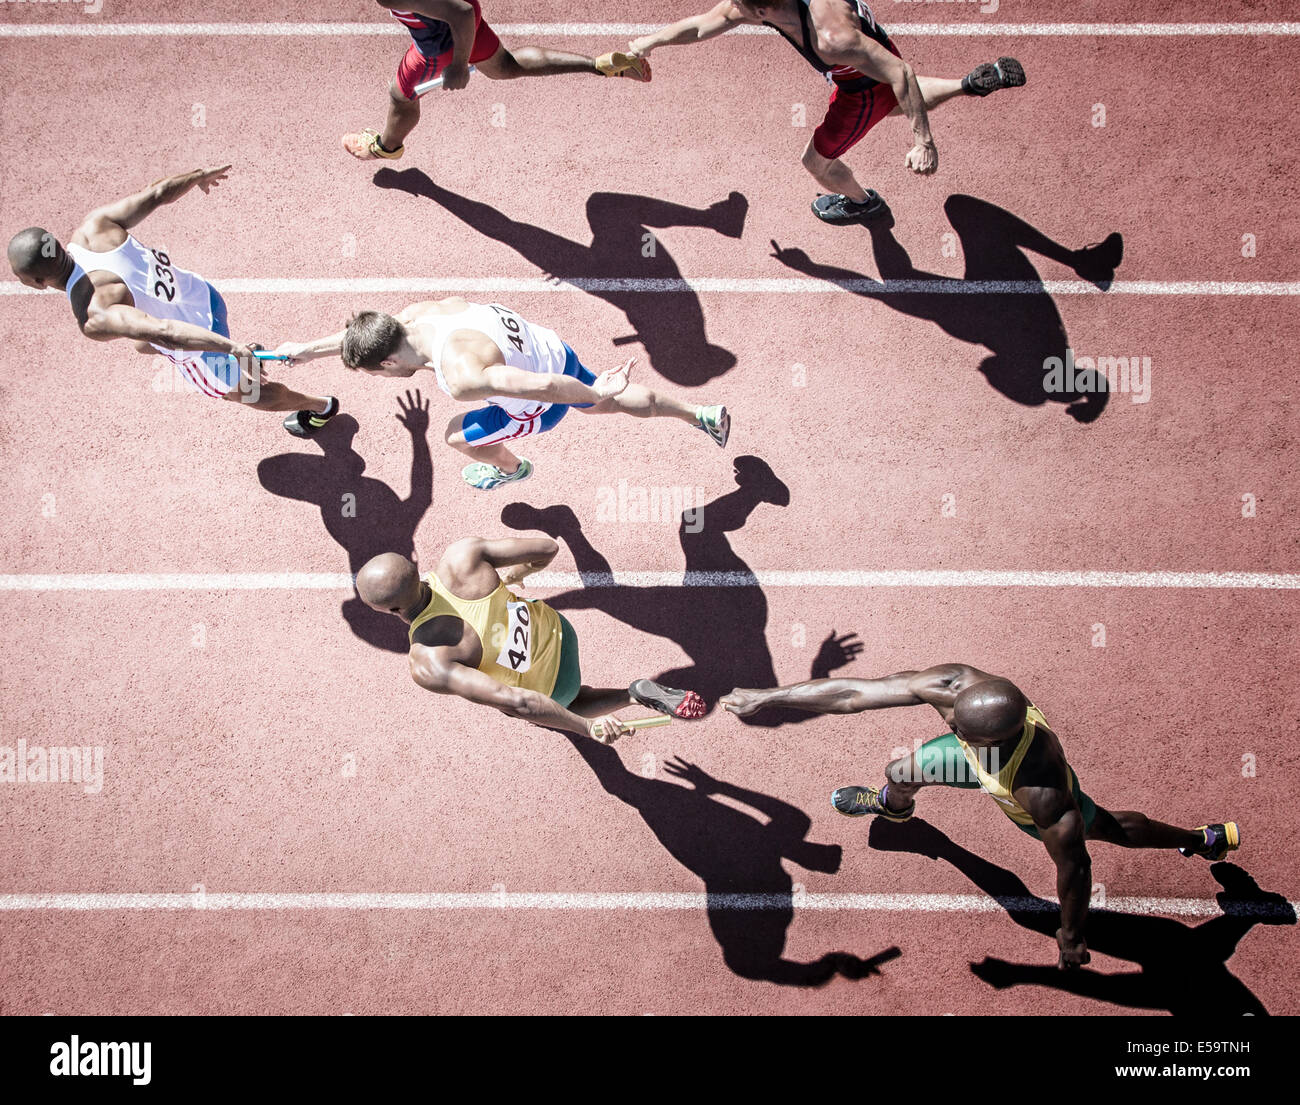 Relay runners handing off batons on track - Stock Image